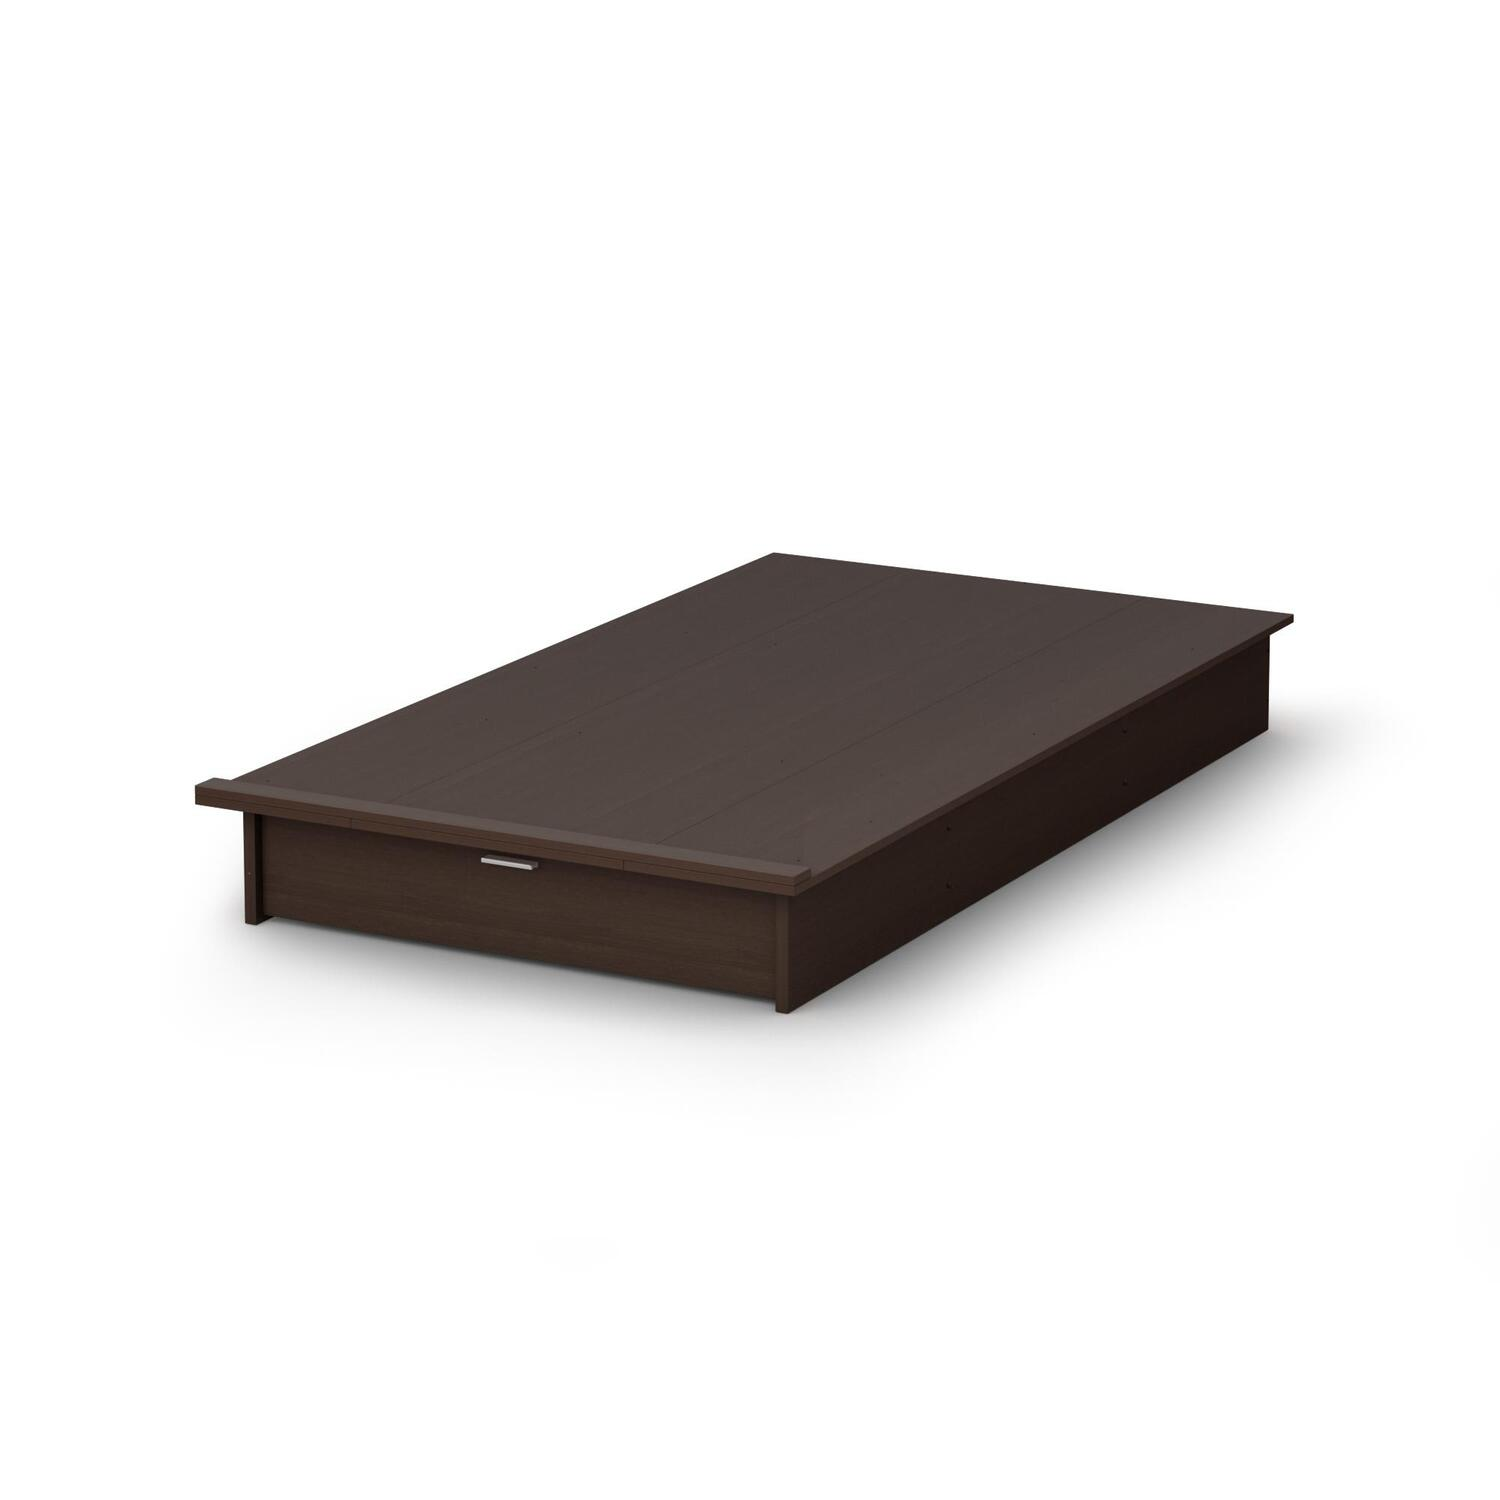 South shore libra twin platform bed 39 quot with drawer by